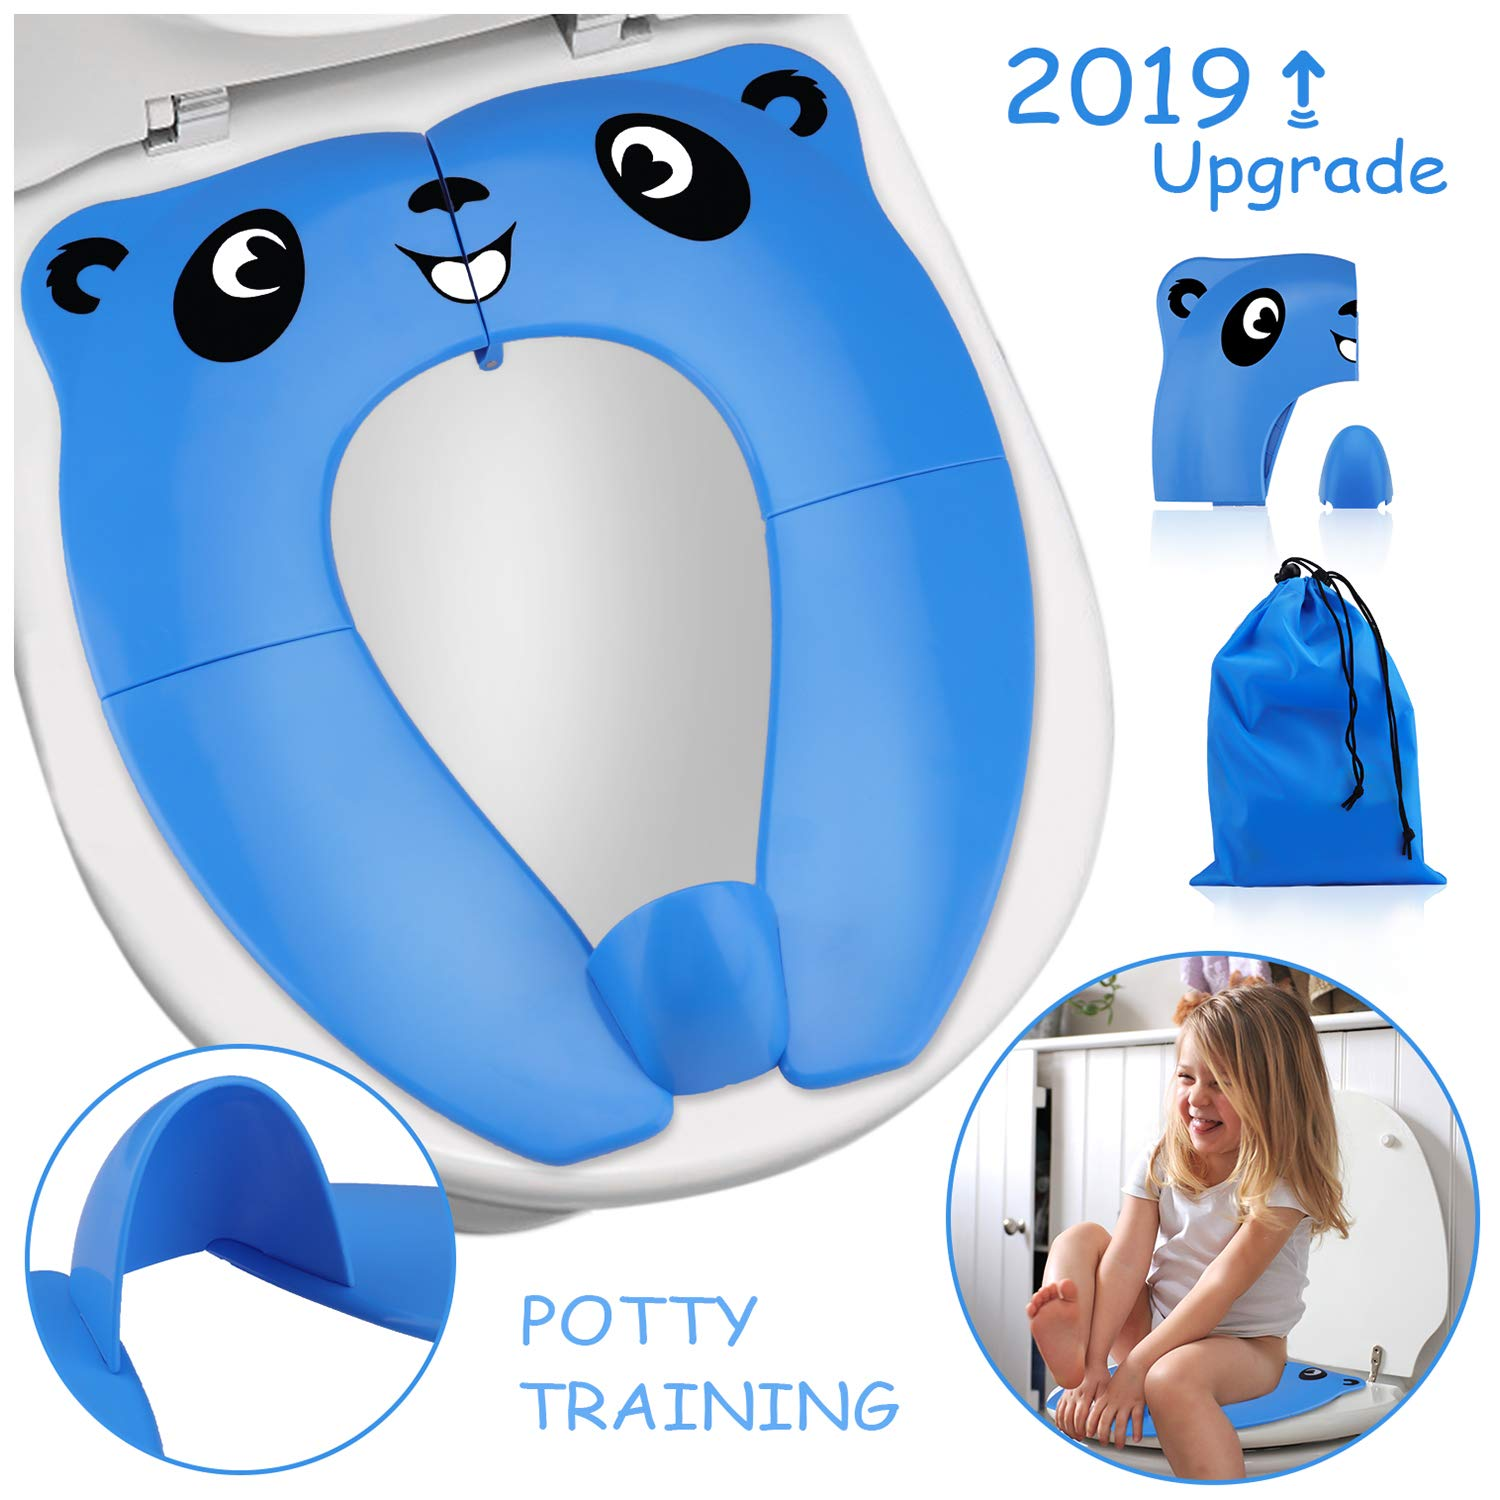 2019 Upgrade Portable Potty Seat with Splash Guard for Toddler, VIRIITA Foldable Travel Potty Seat with Carry Bag, Non-Slip Pads Toilet Potty Training Seat Covers for Baby, Toddlers and Kids (Blue)